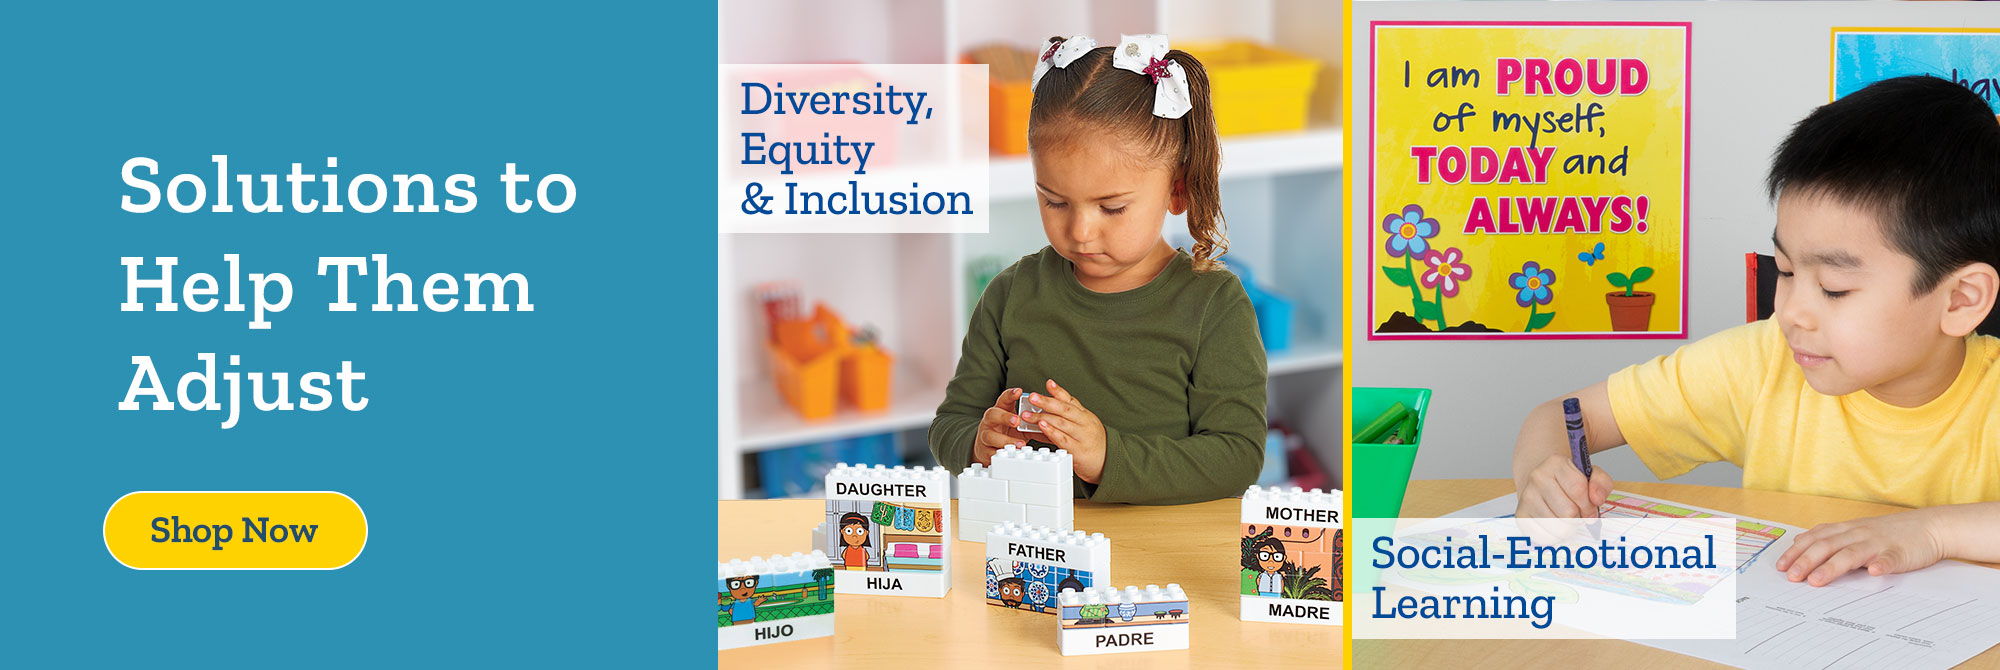 Social-Emotional Learning/Diversity, Equity & Inclusion